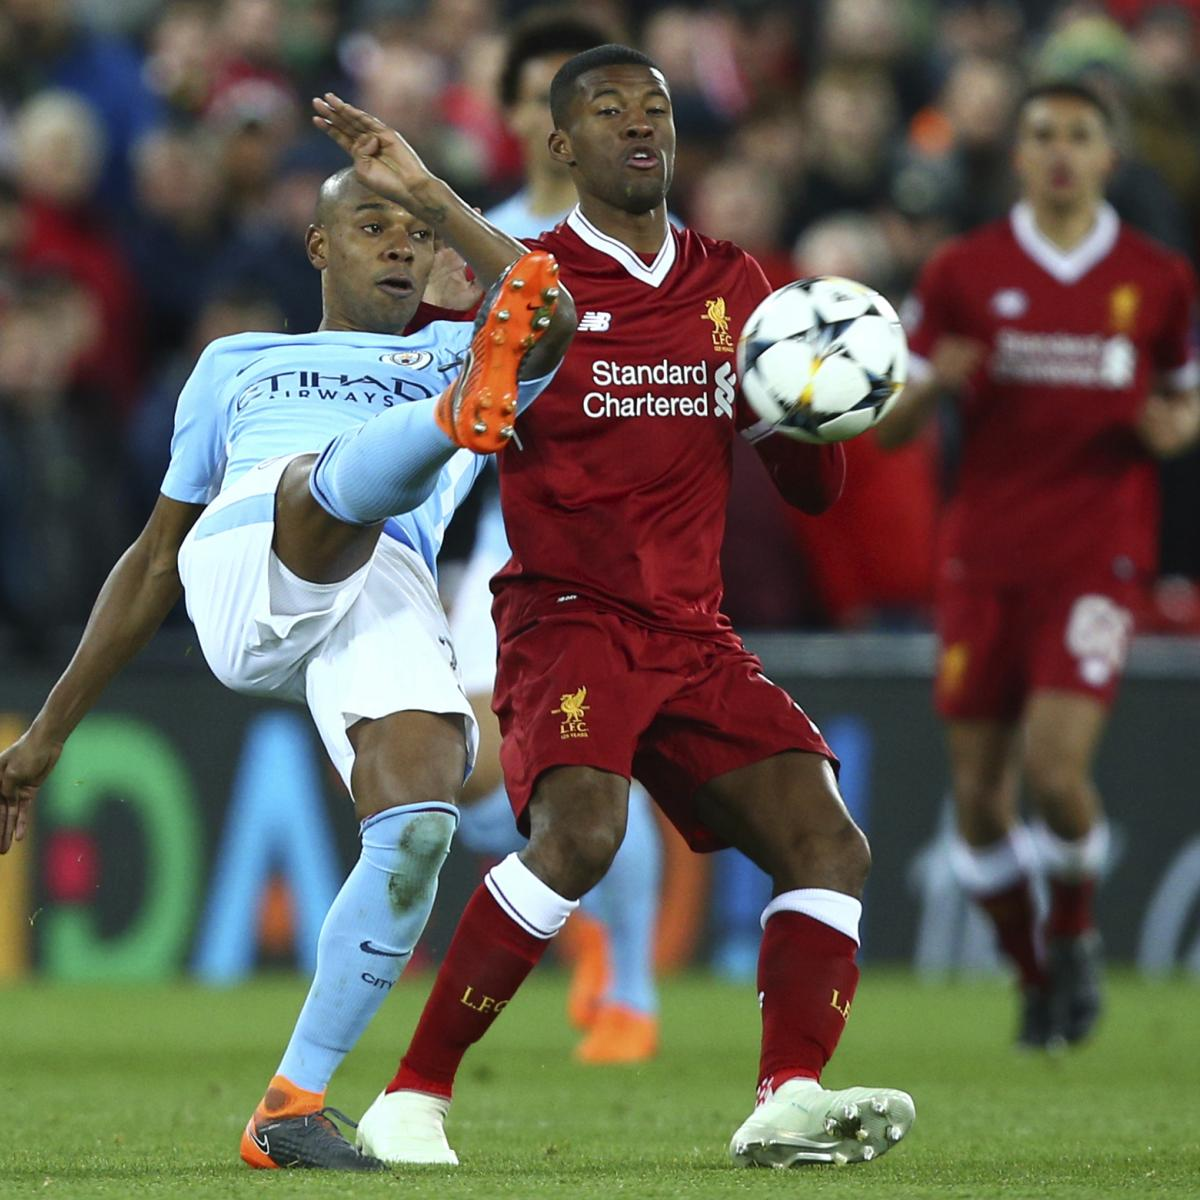 Manchester city vs liverpool preview live stream tv info for ucl match bleacher report - Manchester city vs liverpool live stream ...